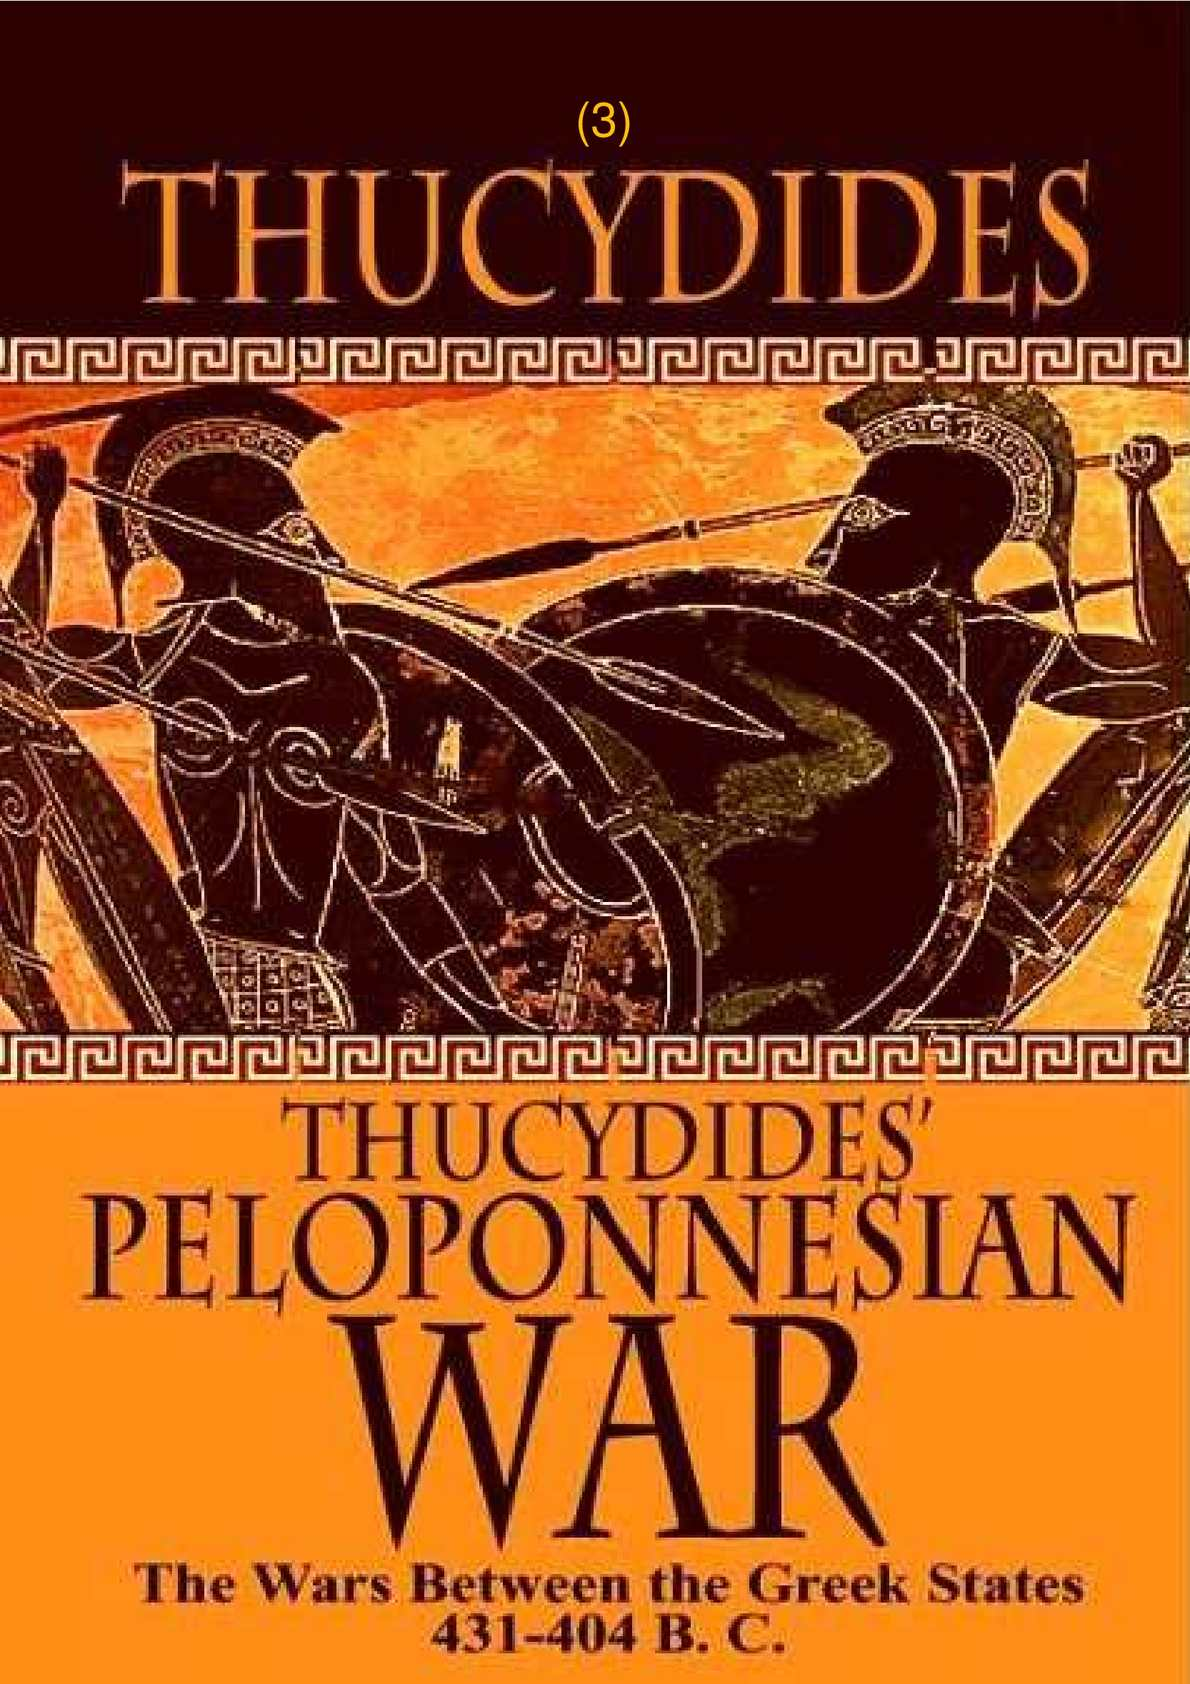 the peloponnesian war essay